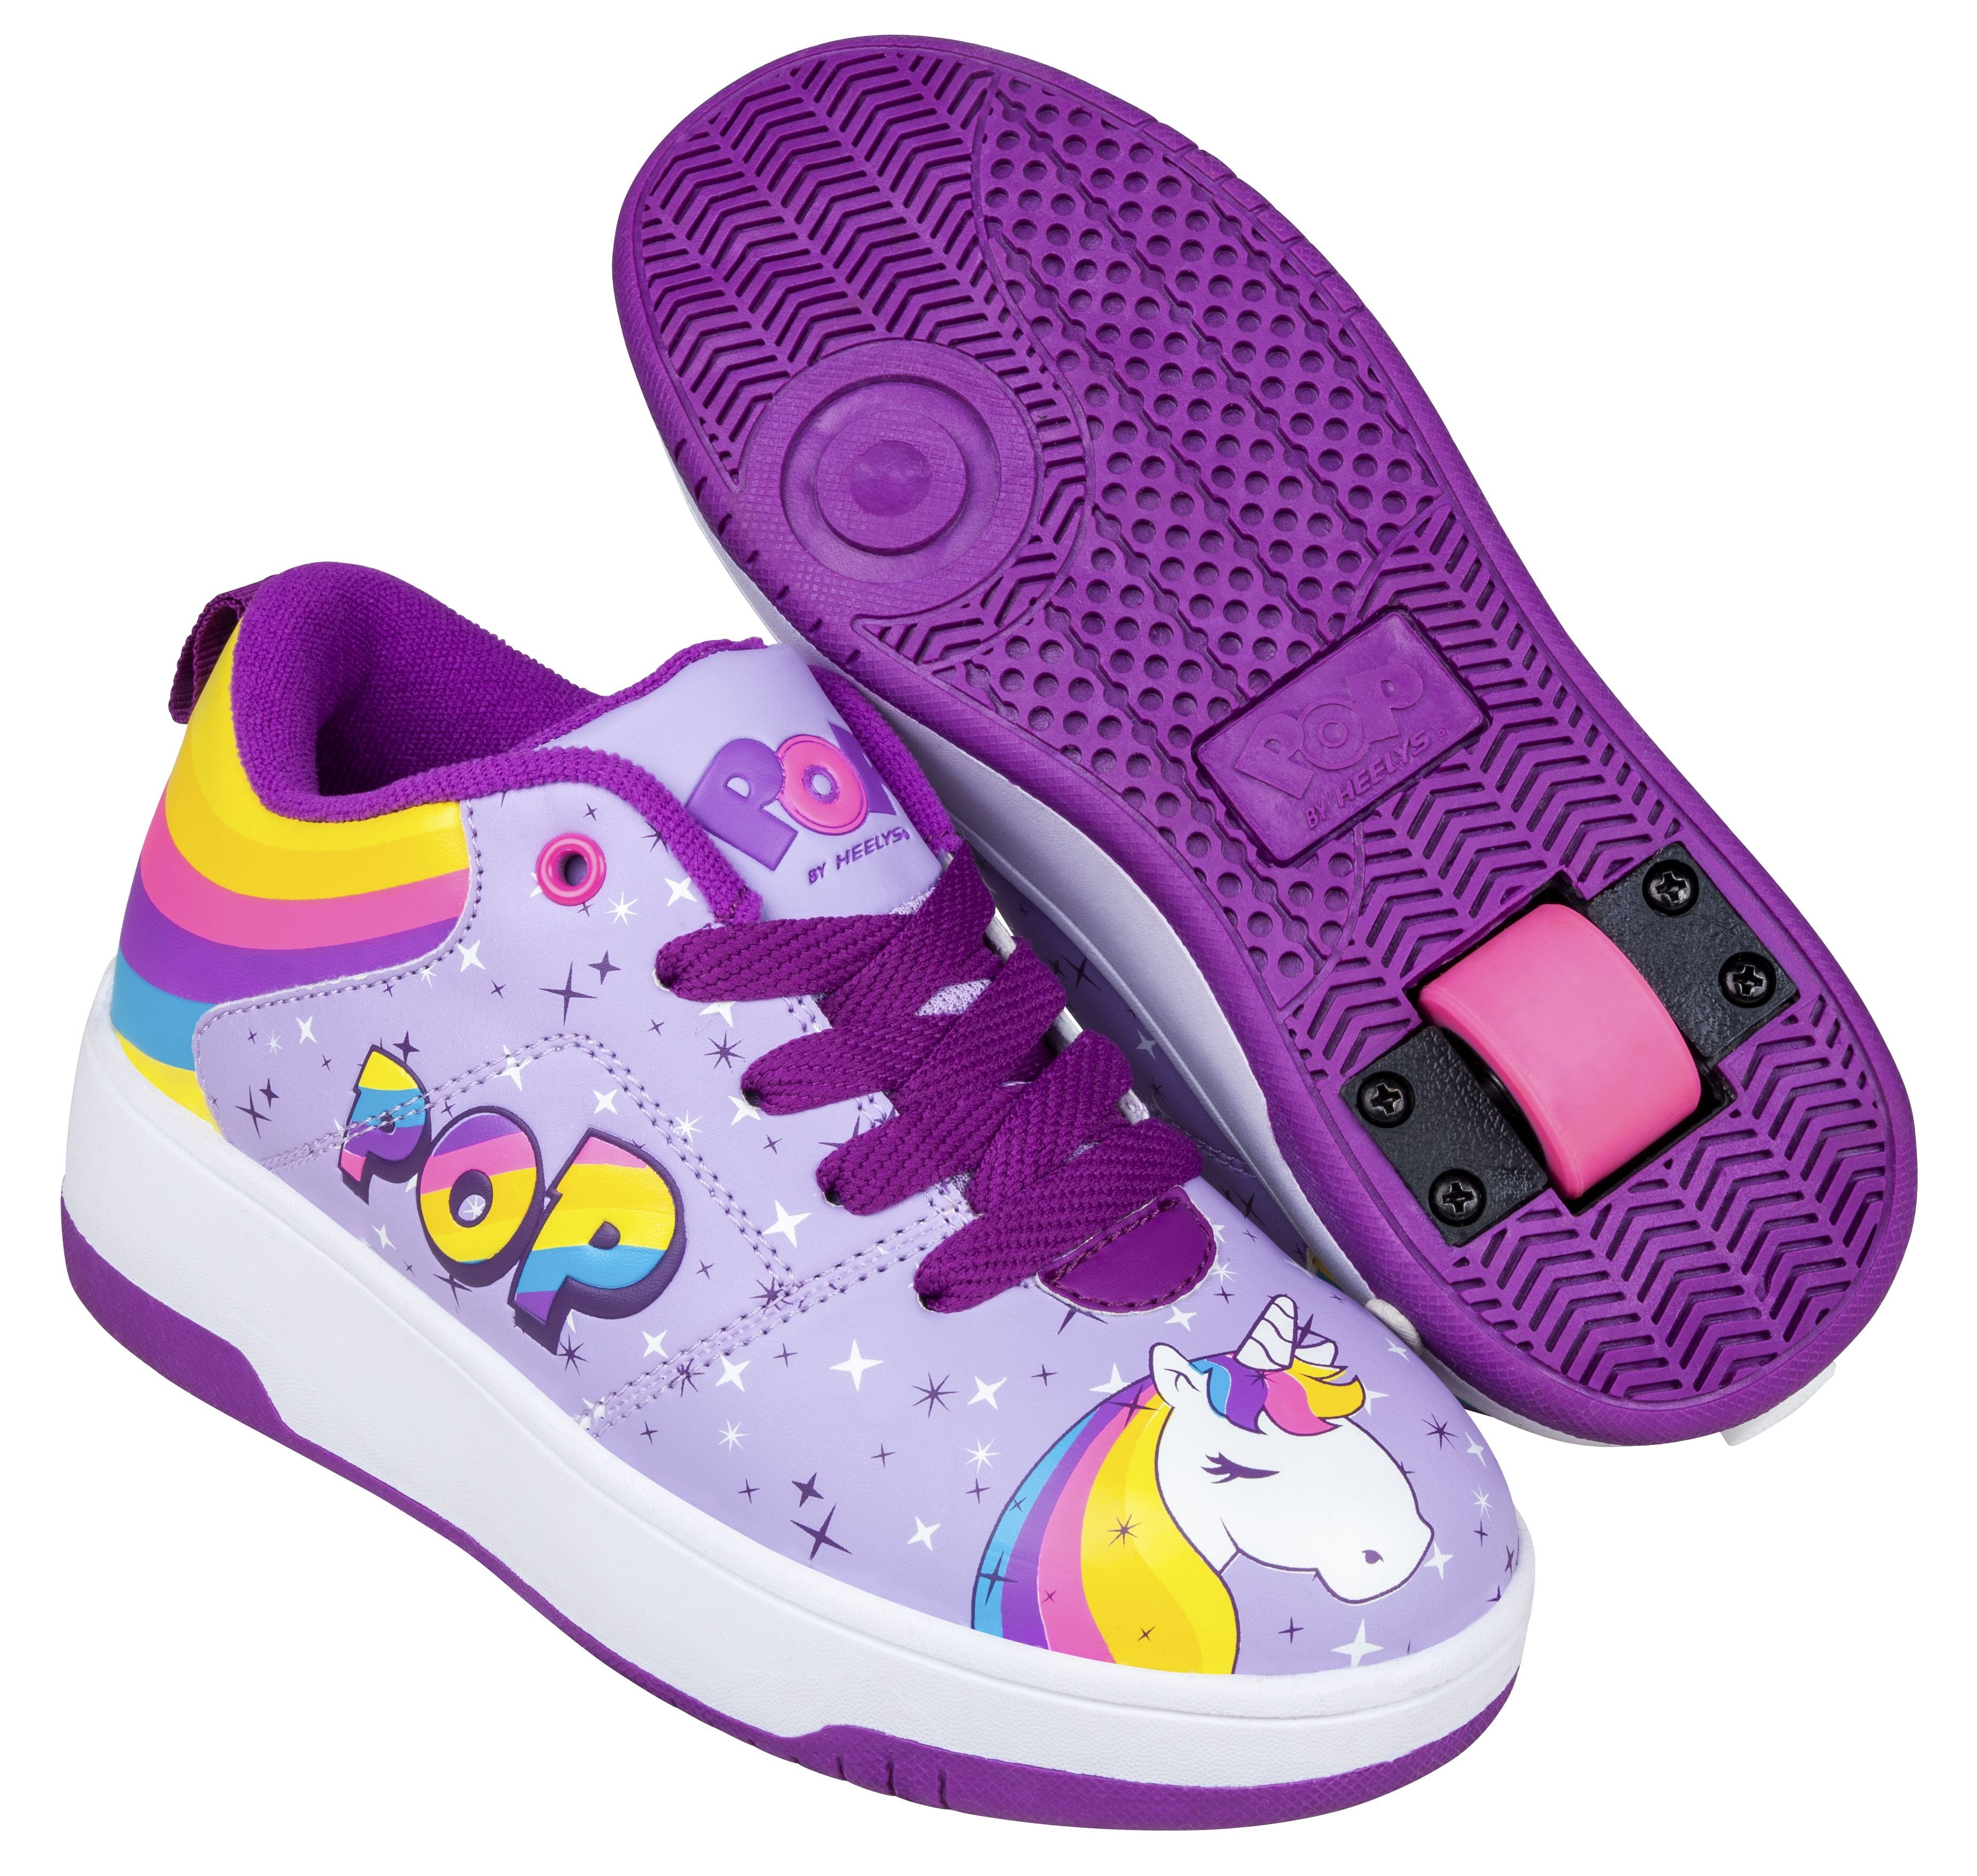 Heelys - POP Shoes - Purple (Size 32) (POP-G1W-0063)